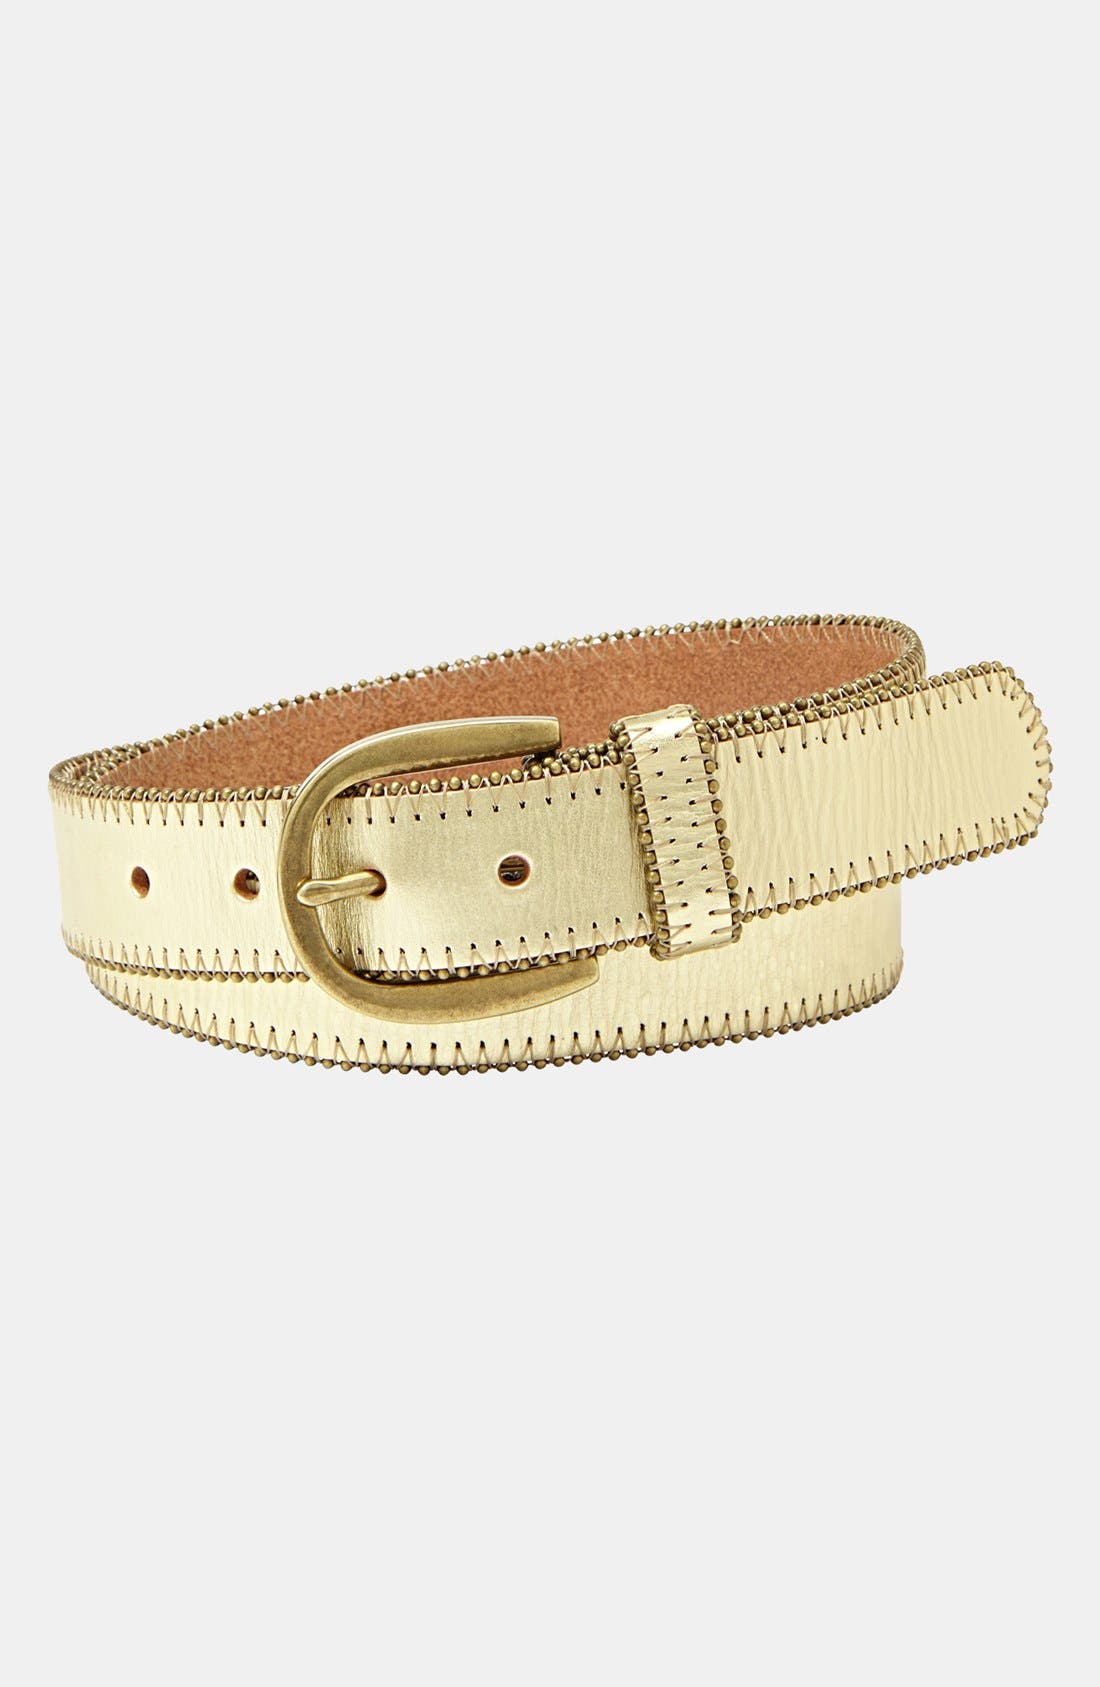 Alternate Image 1 Selected - Fossil Beaded Leather Belt